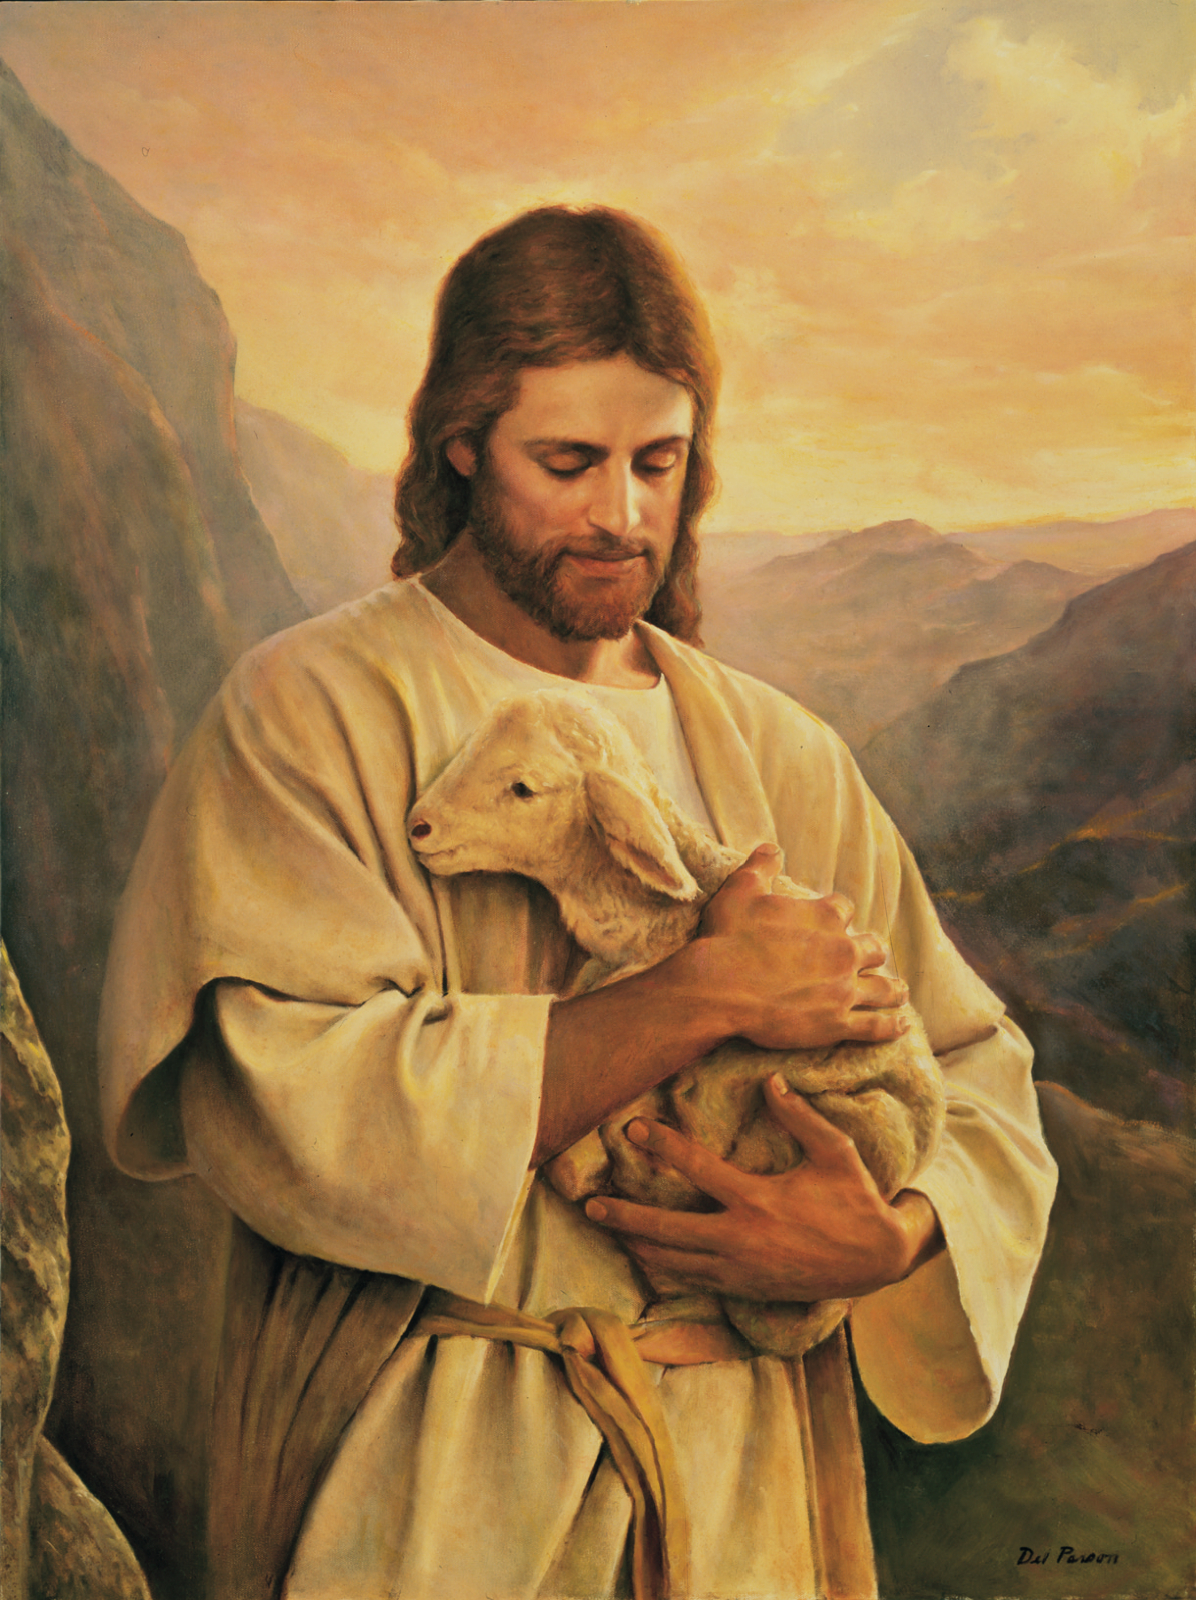 This Christmas remember the love Jesus has for all of his lost sheep.